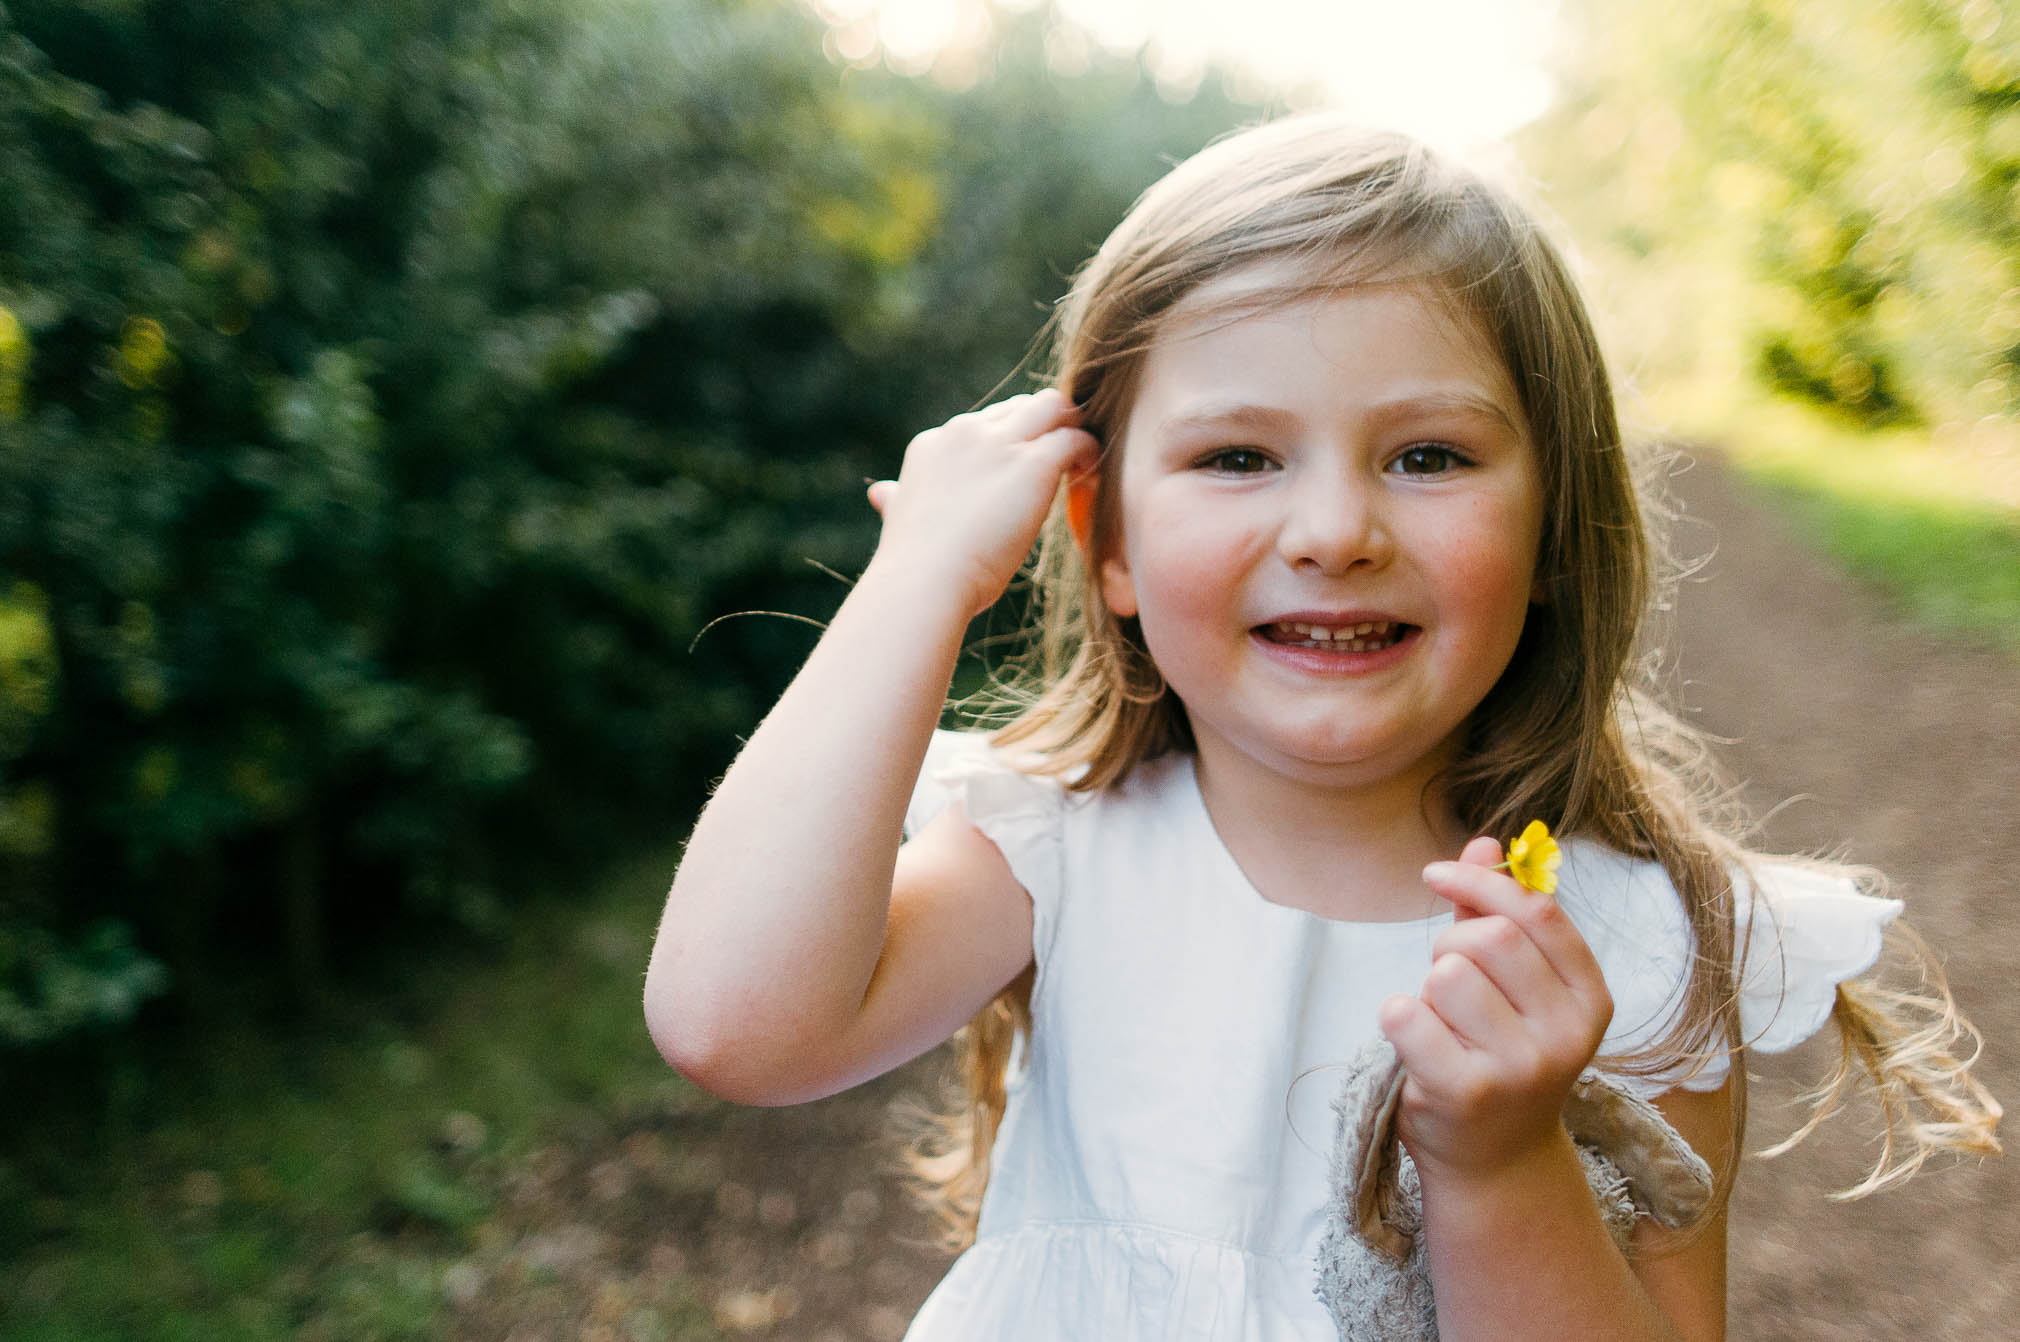 www.purplepeartreephotography.com Essex portrait photographer Famil & lifestyle photographyJPG (34).JPG